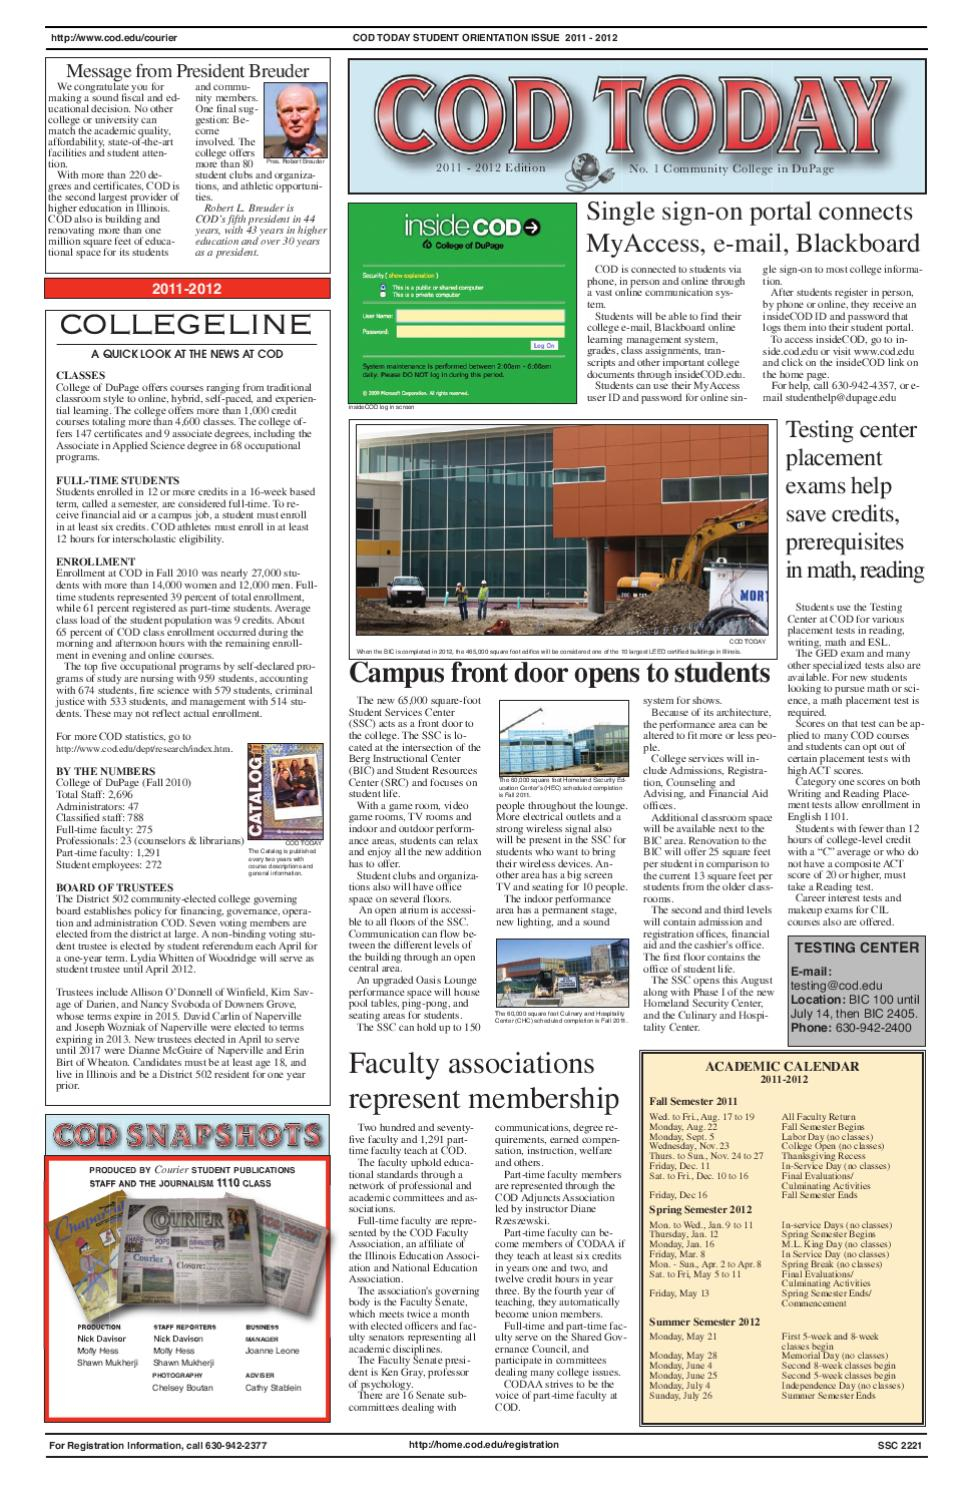 Cod Today 2011 2012Courier Student Newspaper – Issuu For Central College Of Dupage Academic Calendar